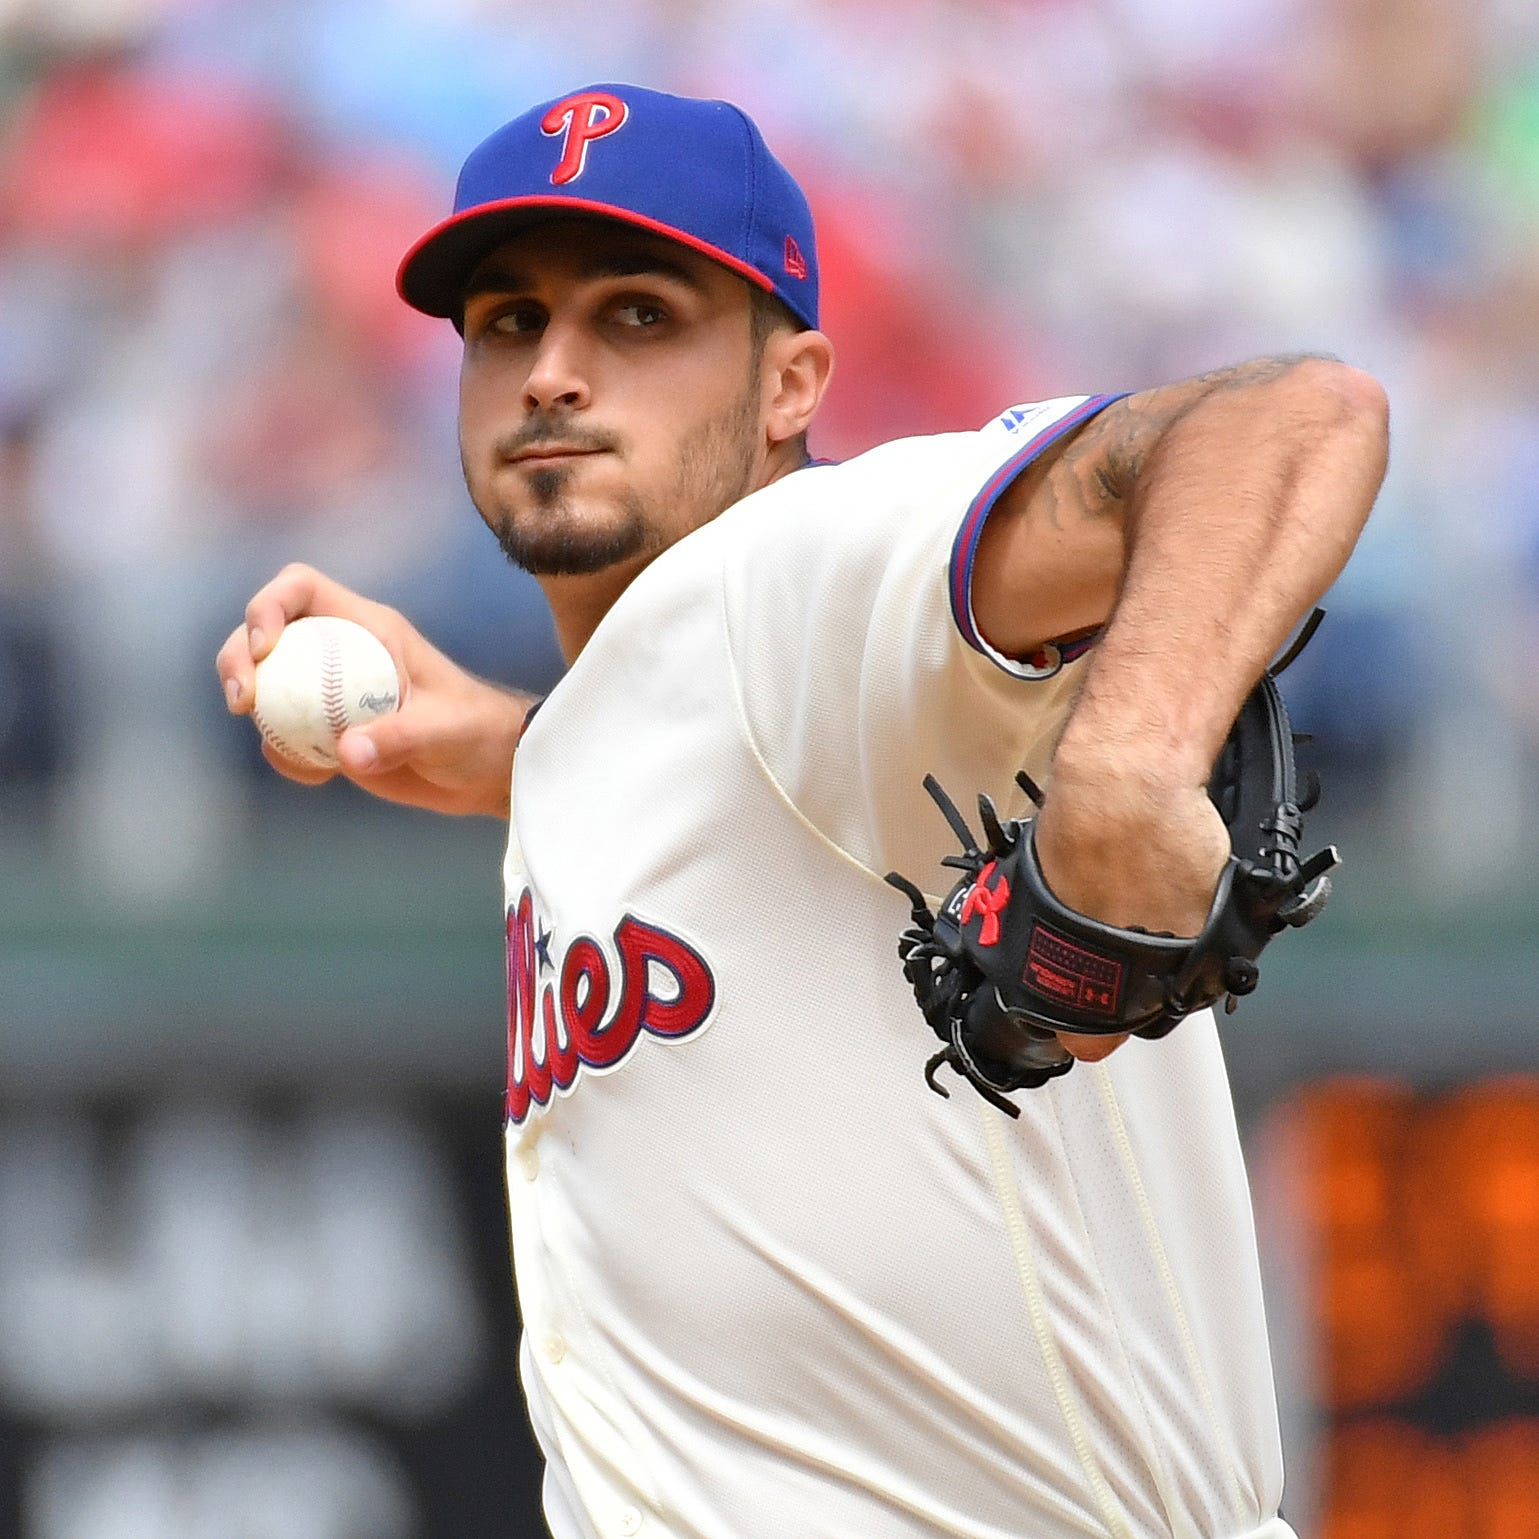 Phillies pitcher Zach Eflin overcame tragedy to become one of MLB's biggest surprises